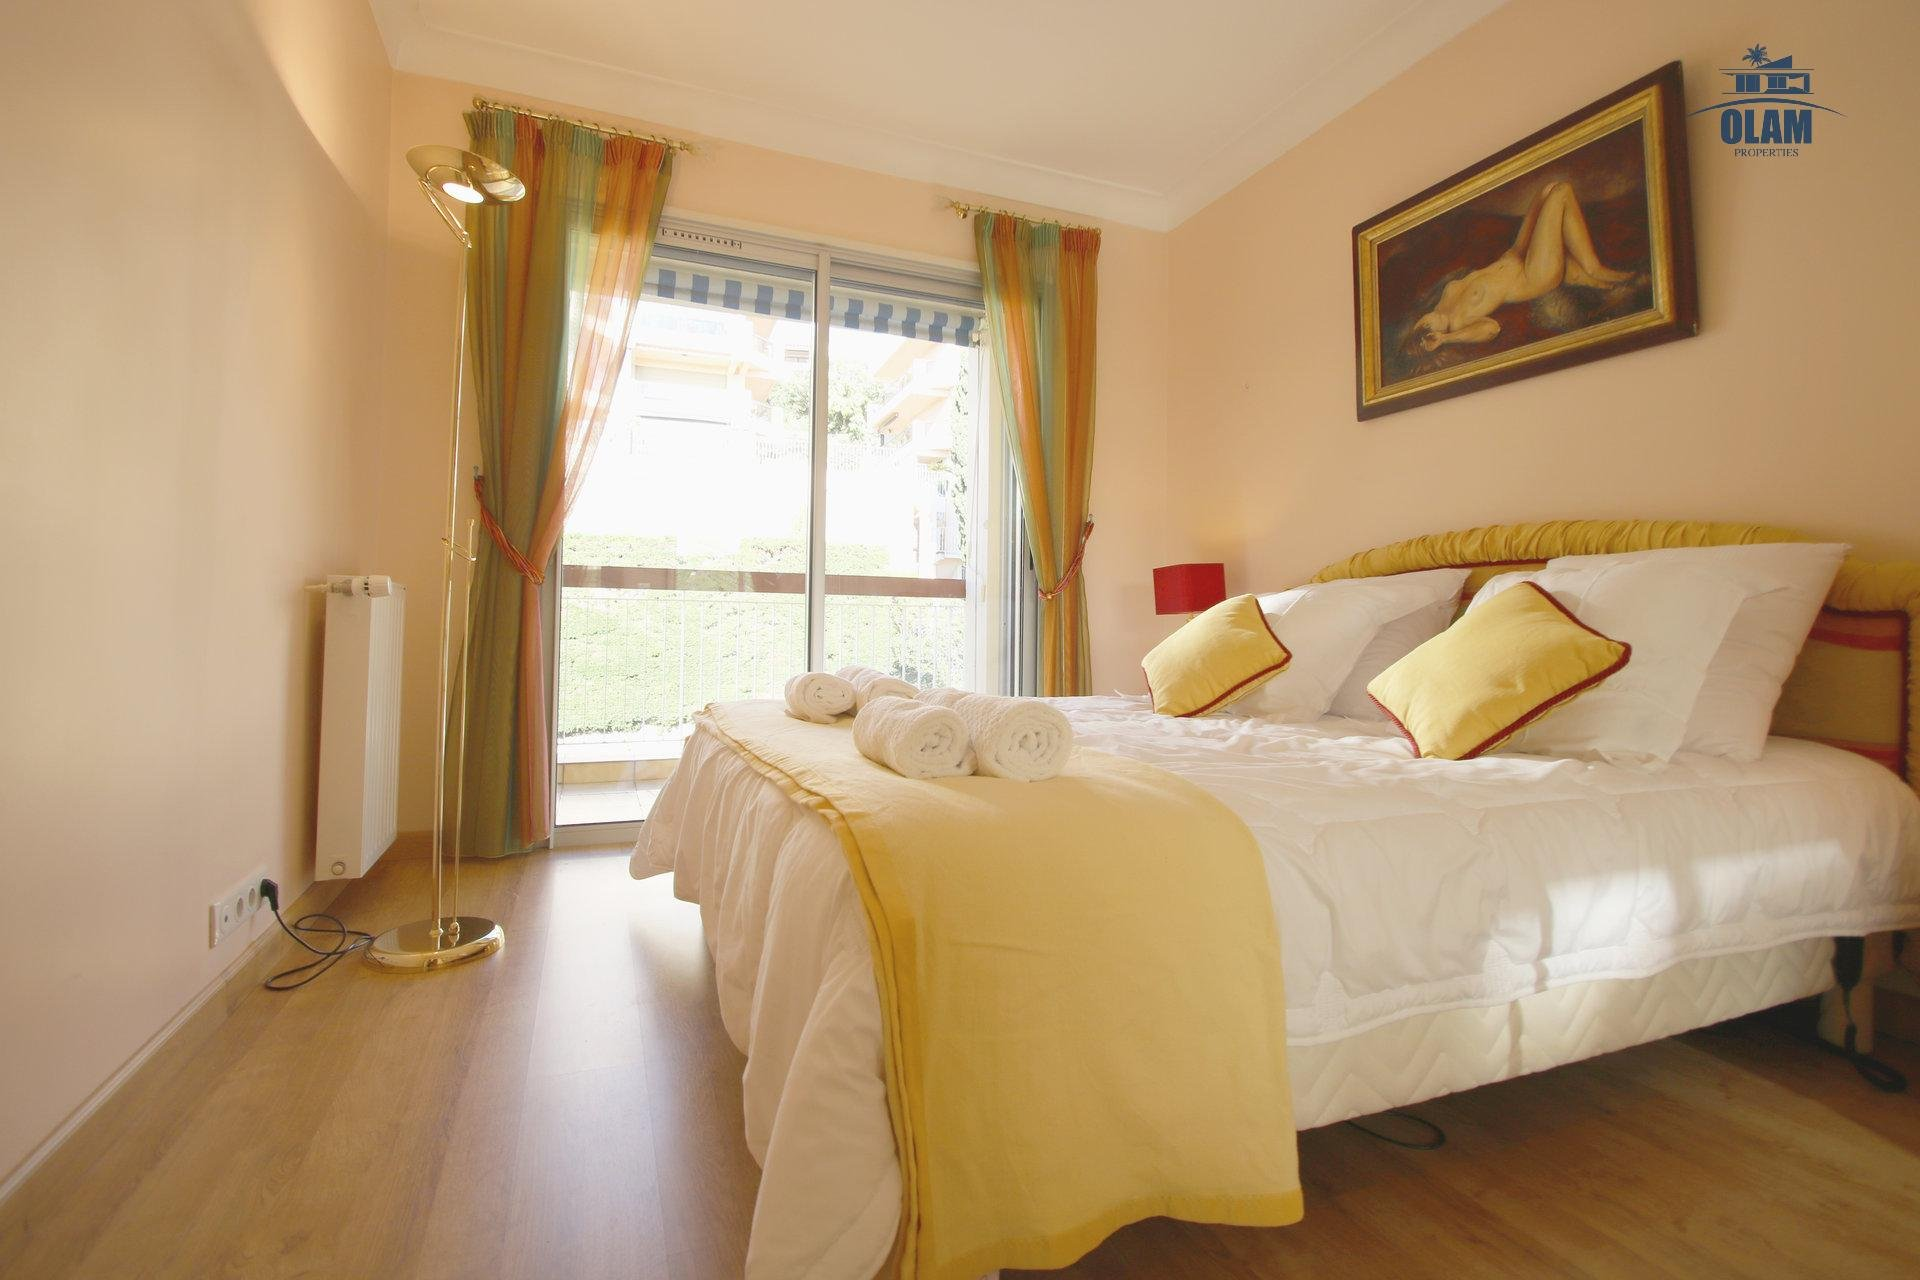 Third bedroom, view, Cannes, French Riviera, queensize bed